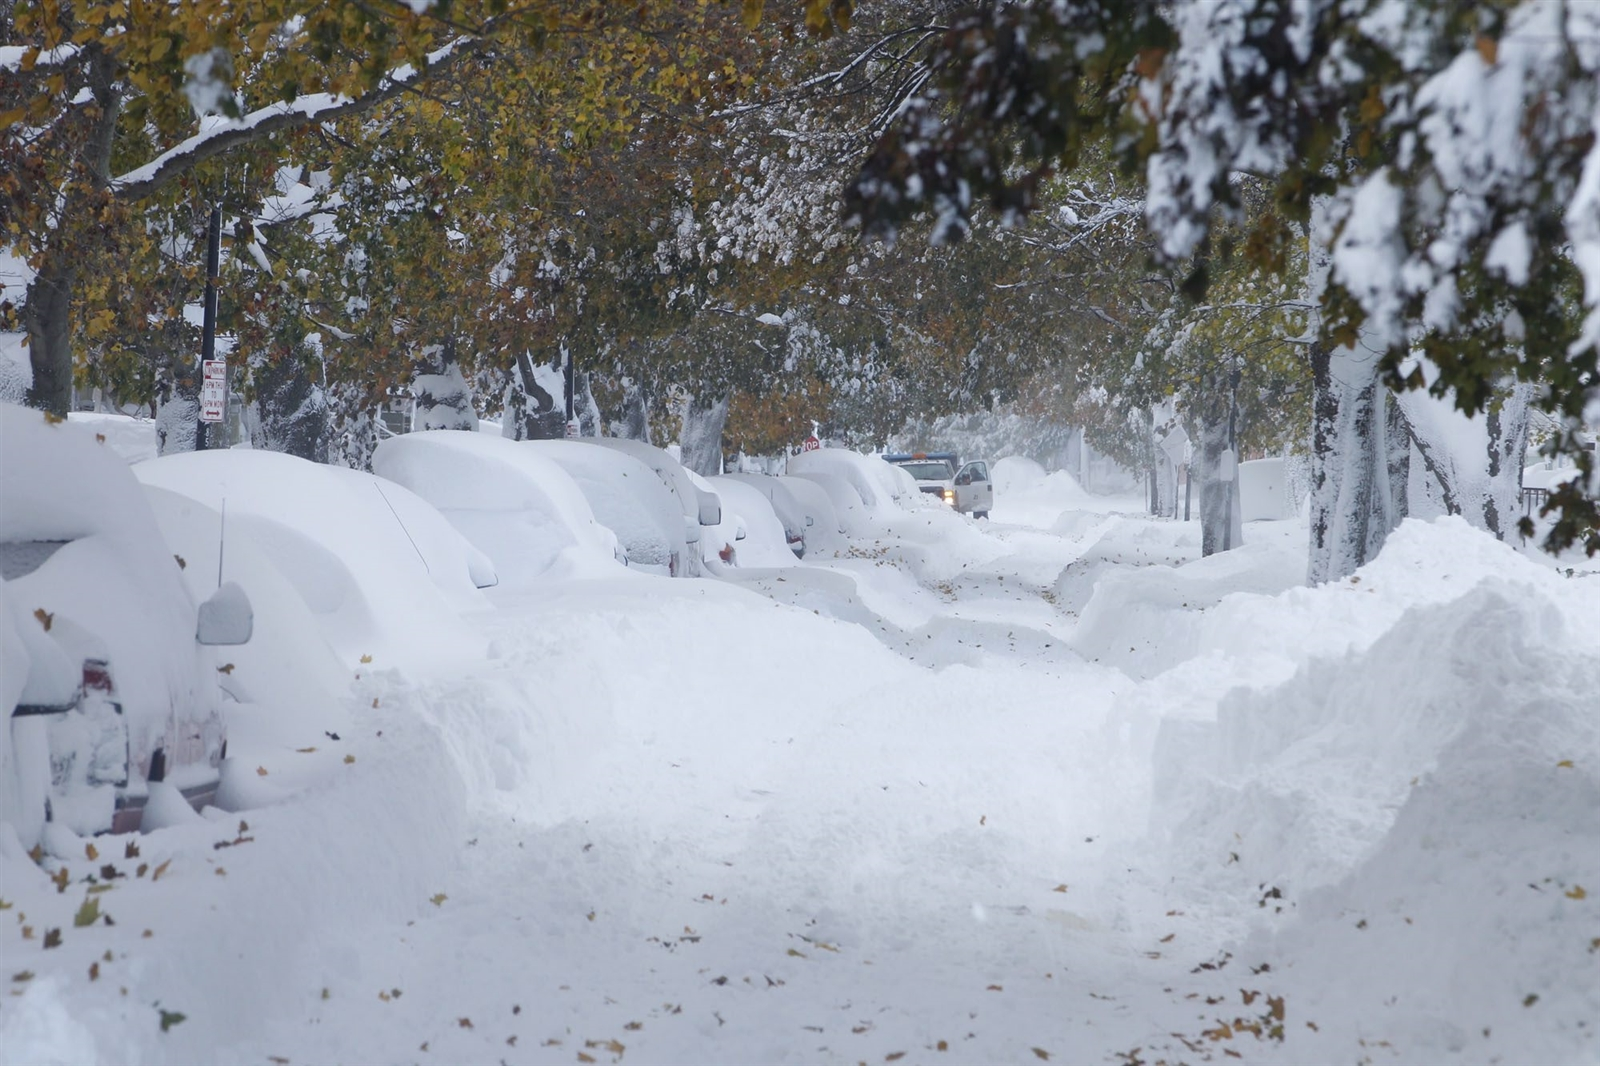 The mayor of Buffalo issued a driving ban in South Buffalo, because streets, like Heussy Avenue, were completely blocked. (John Hickey/Buffalo News)